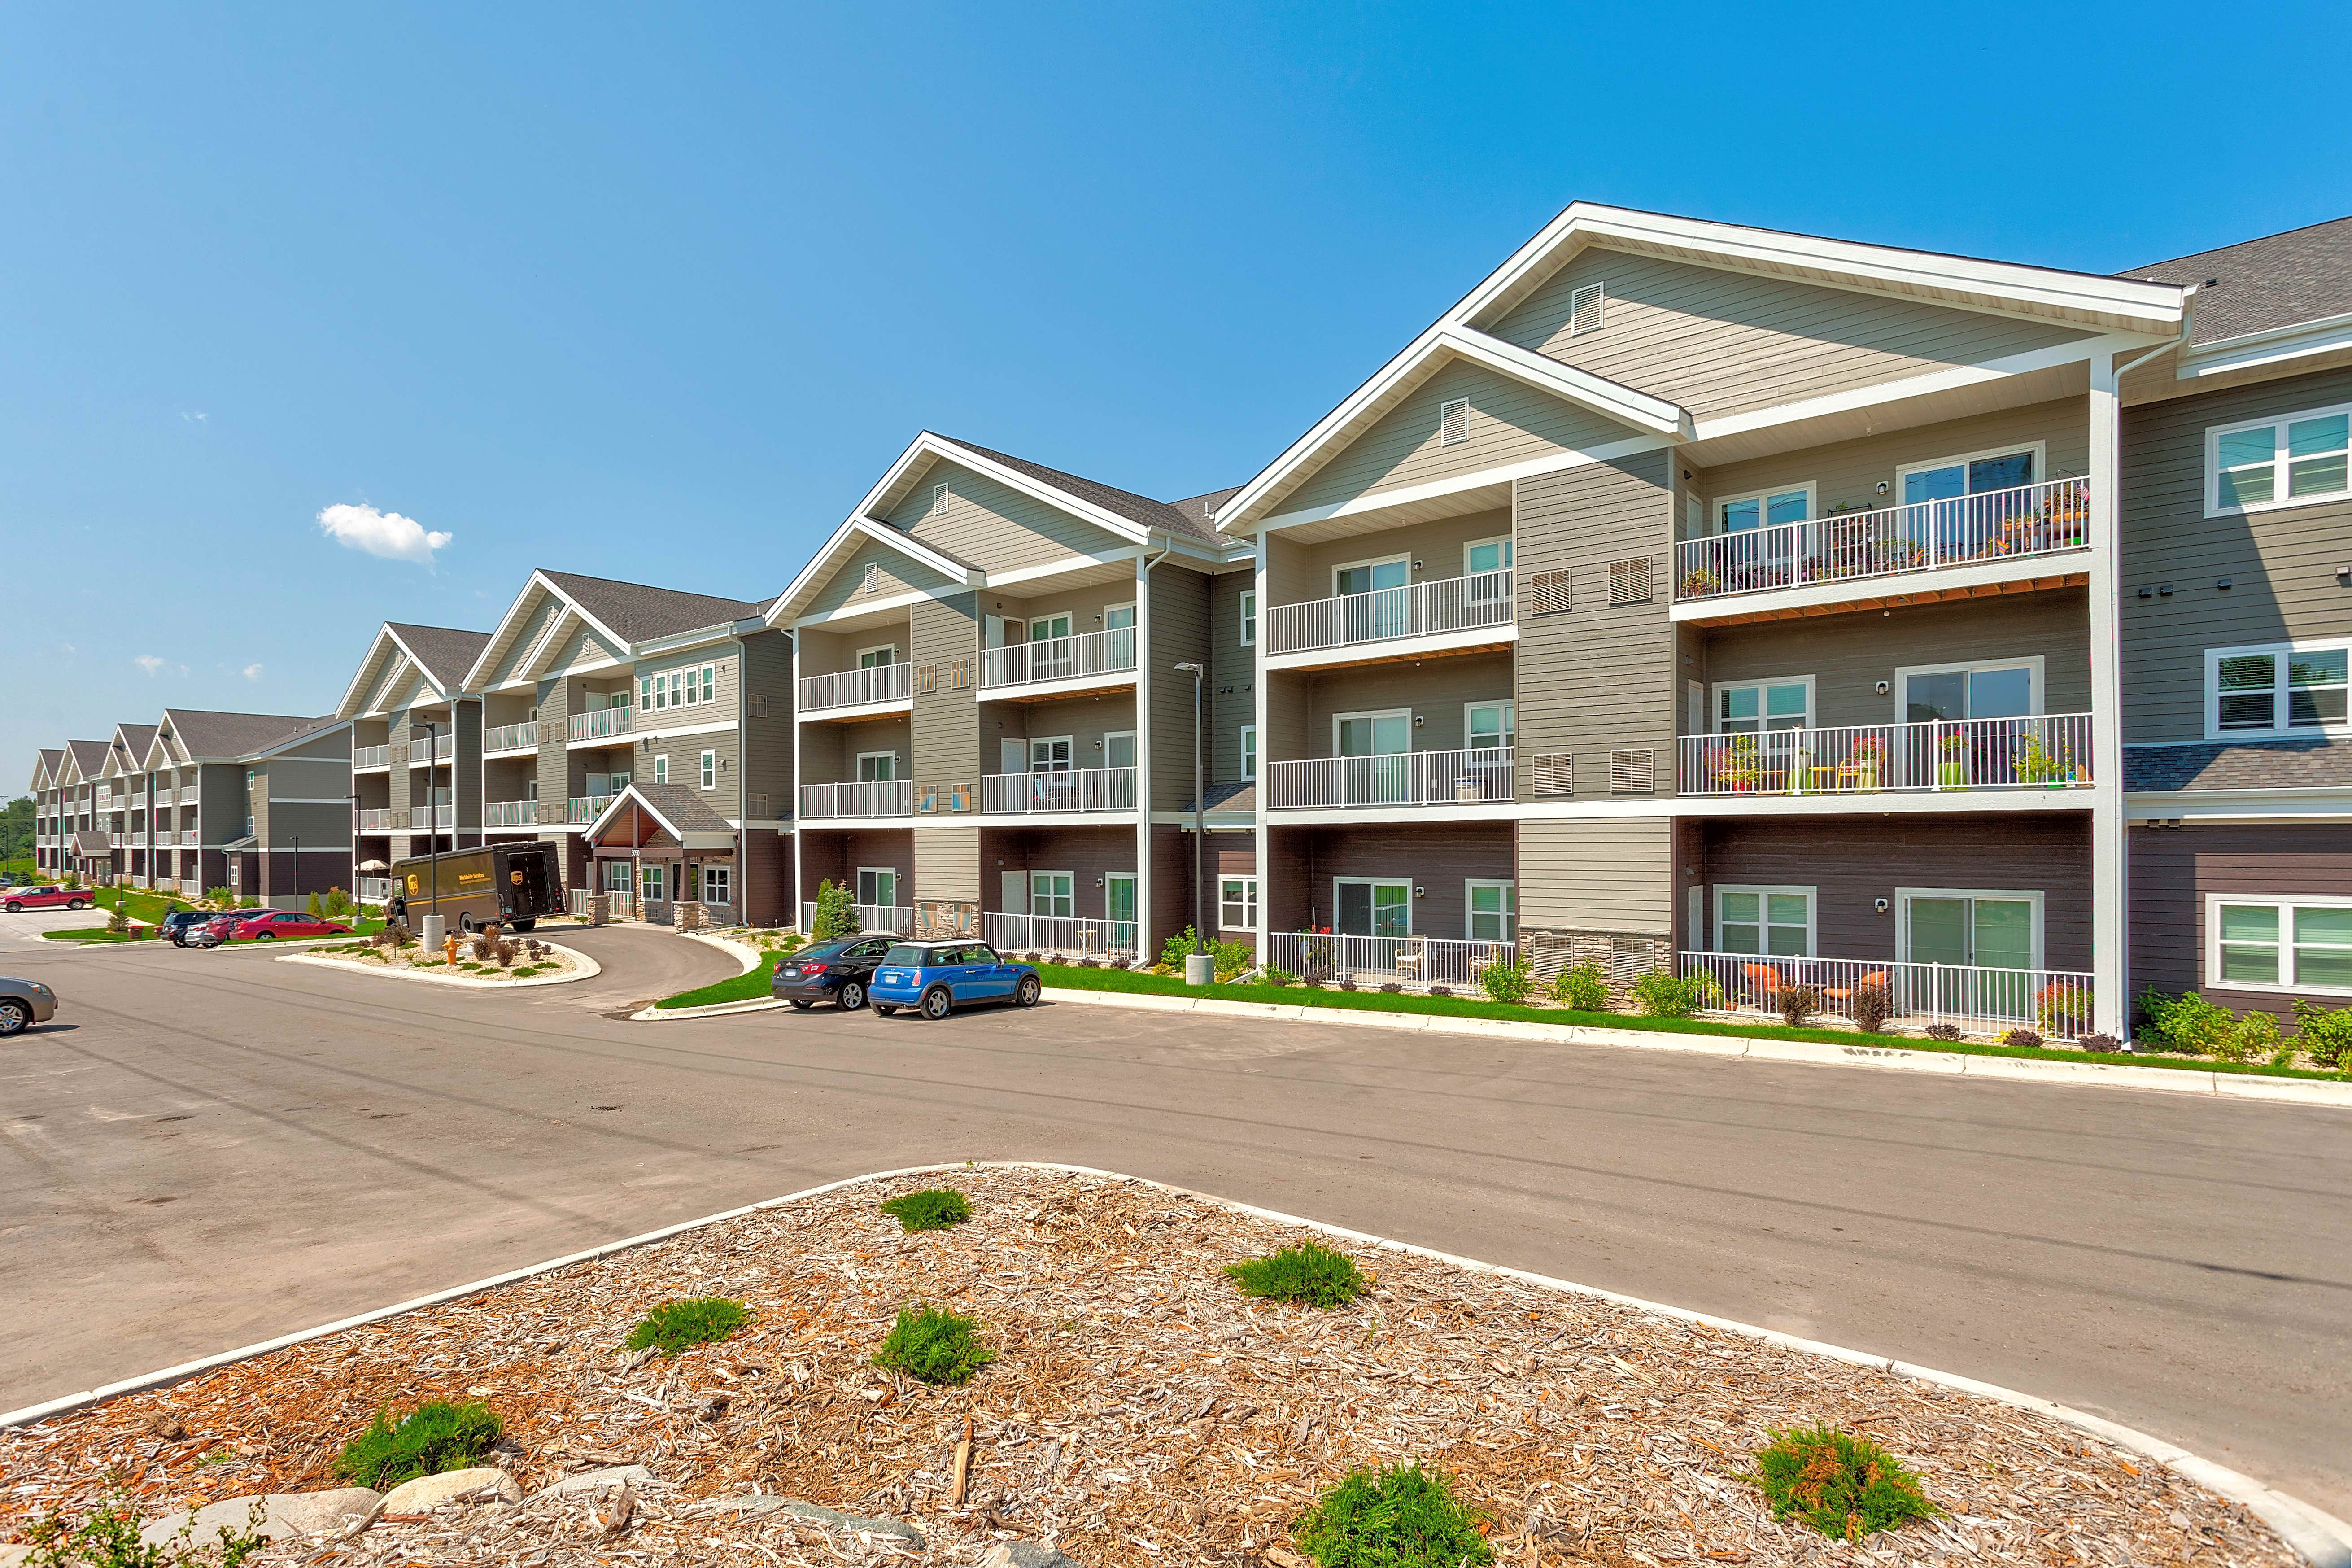 Apartments Near Century Conifer Ridge Apartments for Century College Students in  White Bear Lake, MN